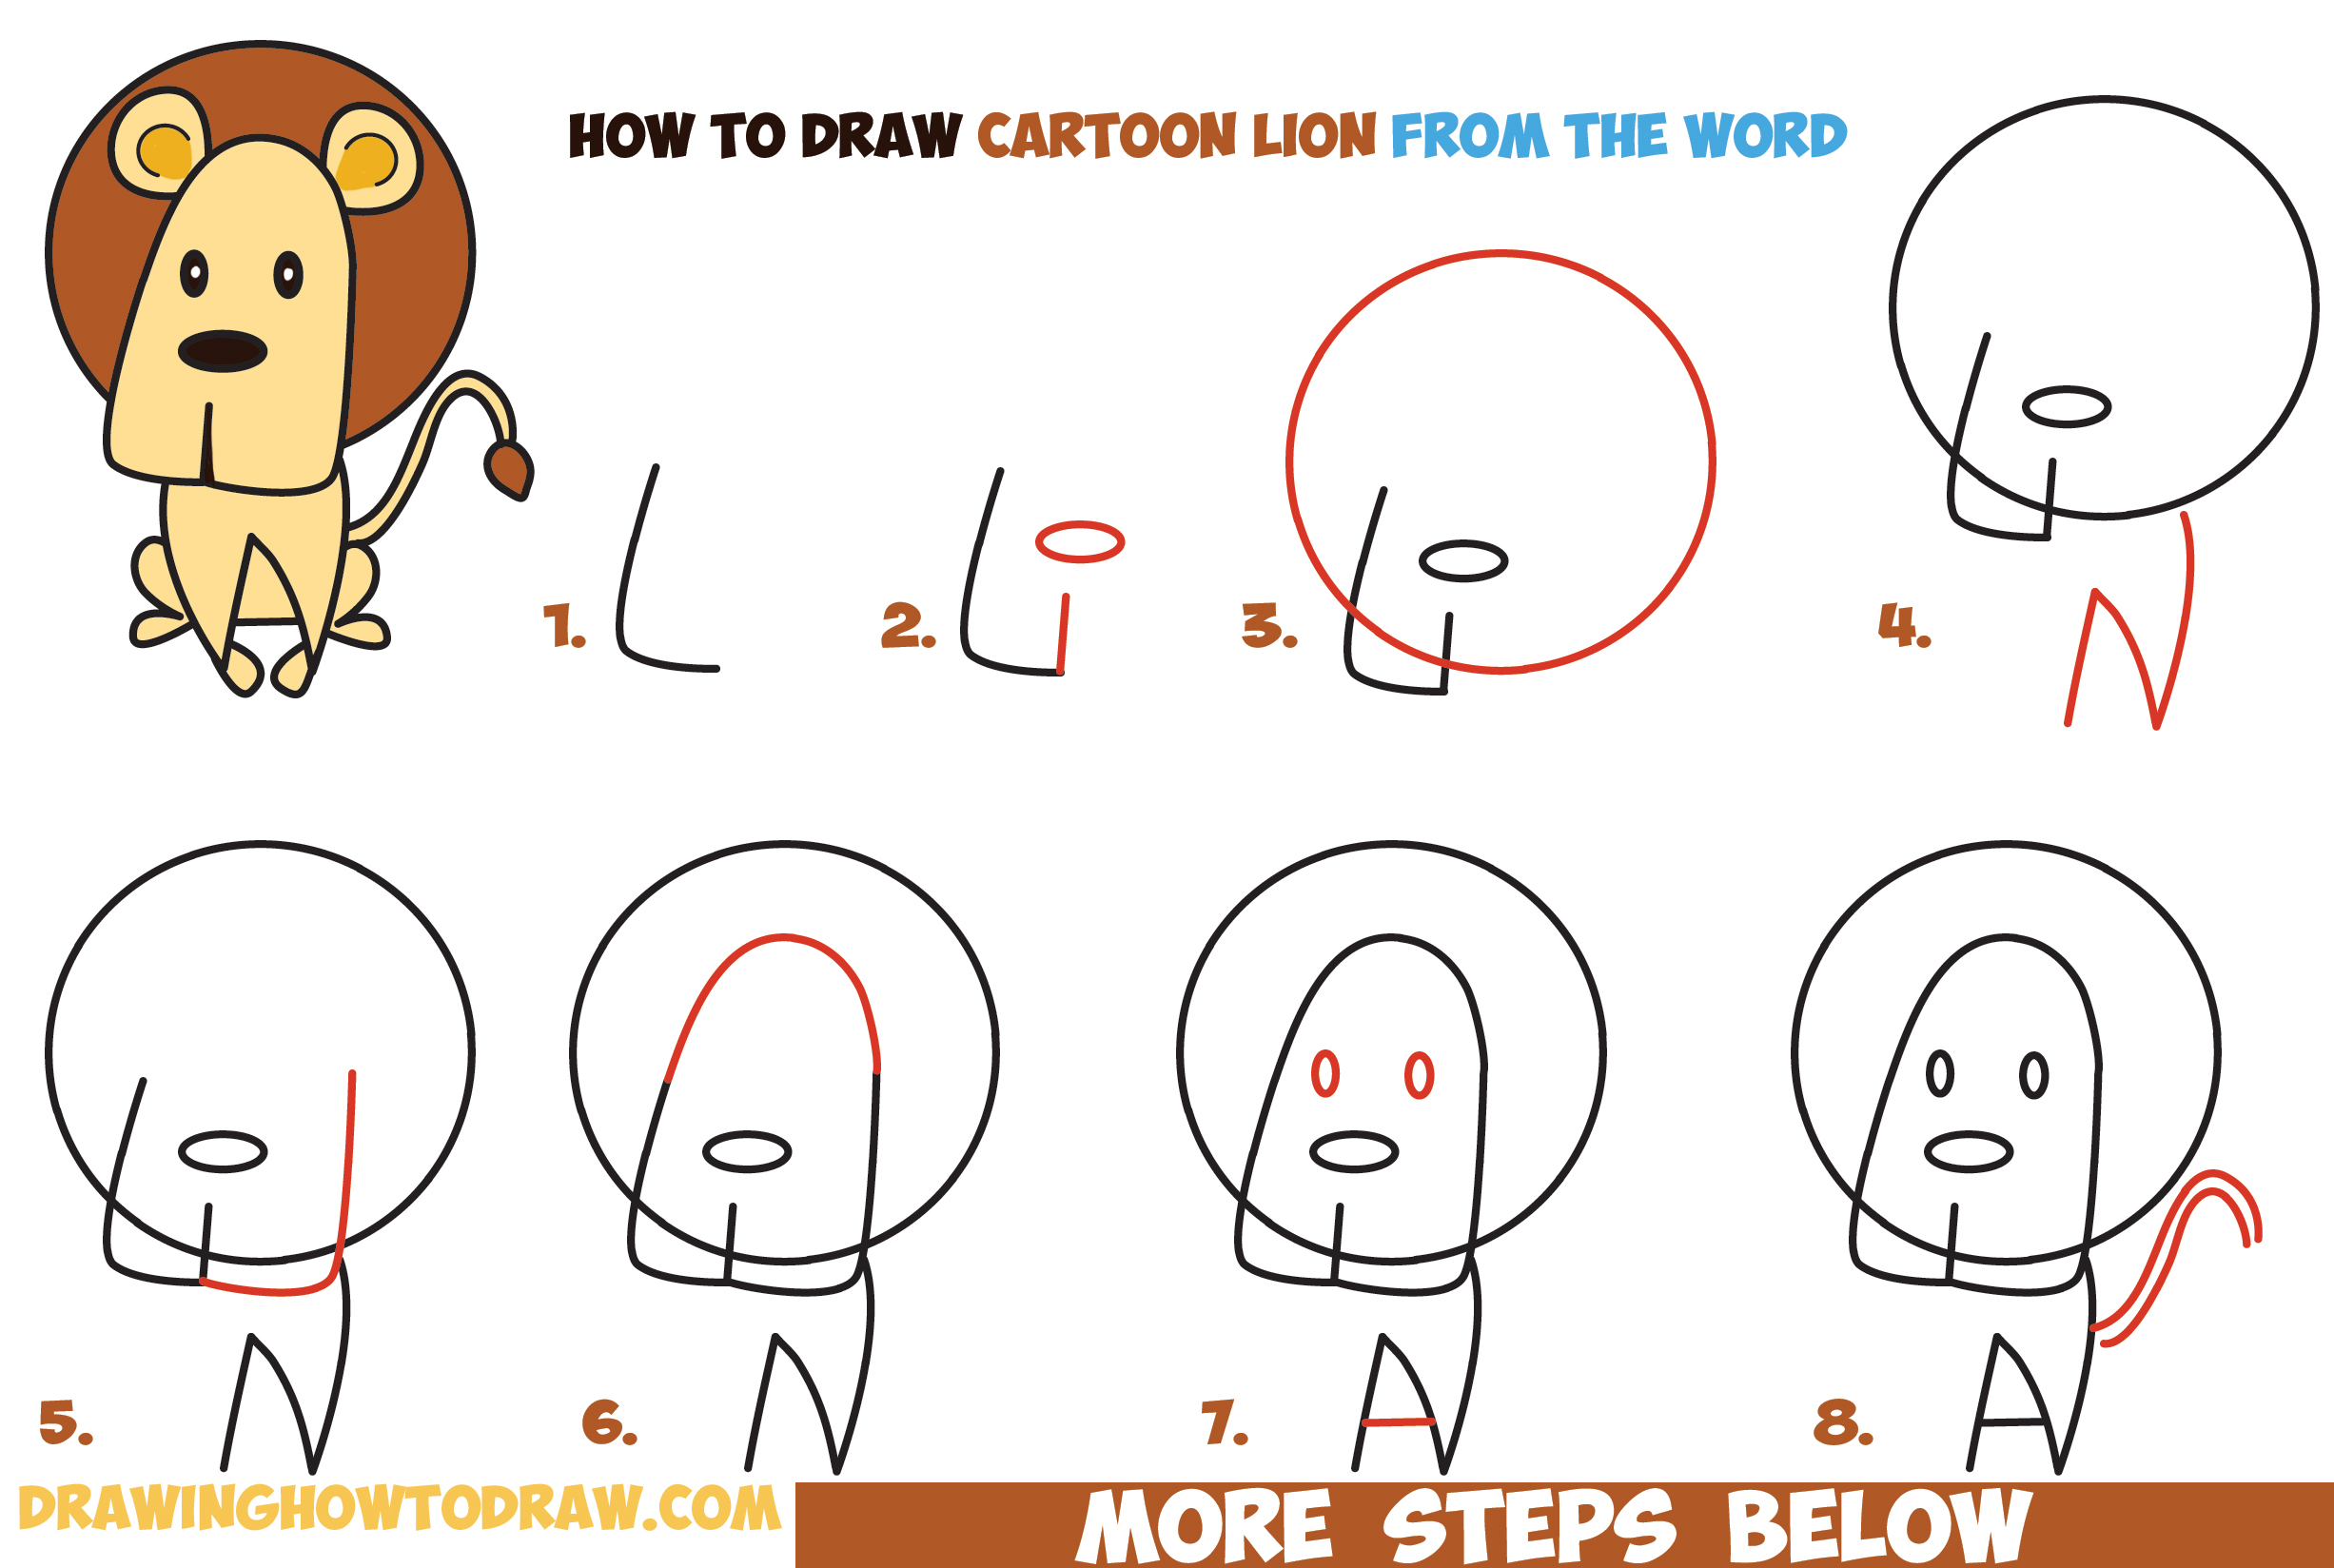 How To Draw Cartoon Lion From The Word Easy Step By Step Drawing Tutorial For Kids Word Cartoon How To Draw Step By Step Drawing Tutorials